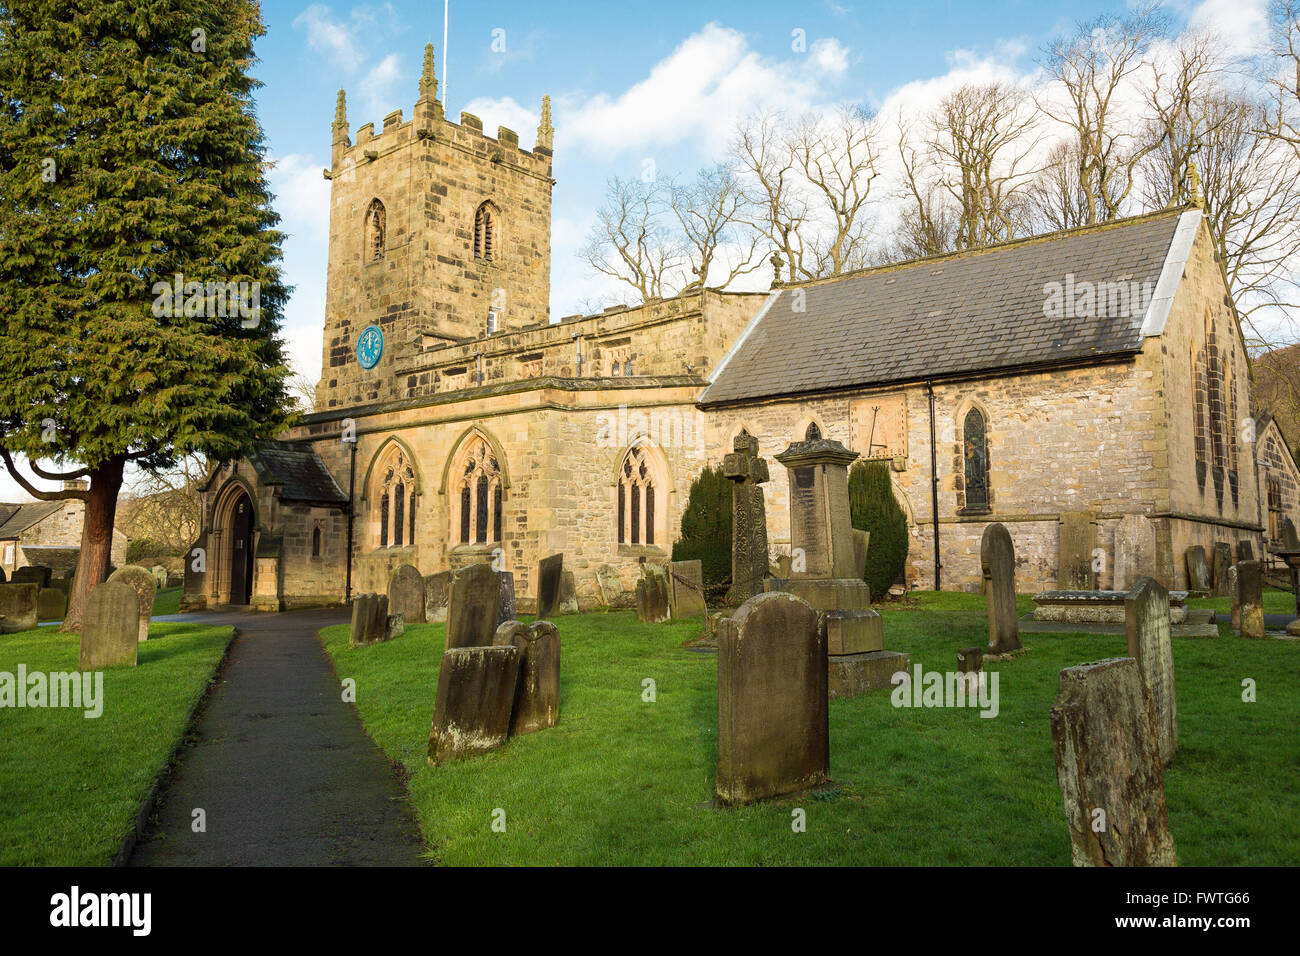 The parish church of St. Lawrence in the Peak District village of Eyam in Derbyshire, UK. - Stock Image